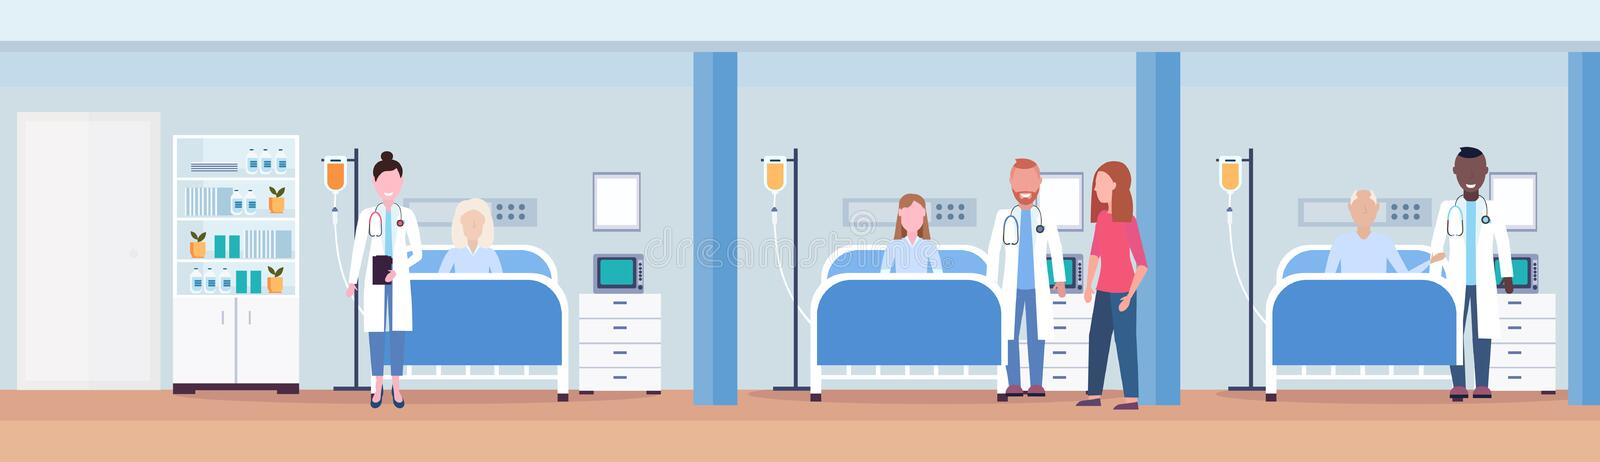 Mix race doctors visiting patients lying in bed intensive therapy ward healthcare concept hospital room interior modern. Medical clinic horizontal banner vector stock illustration